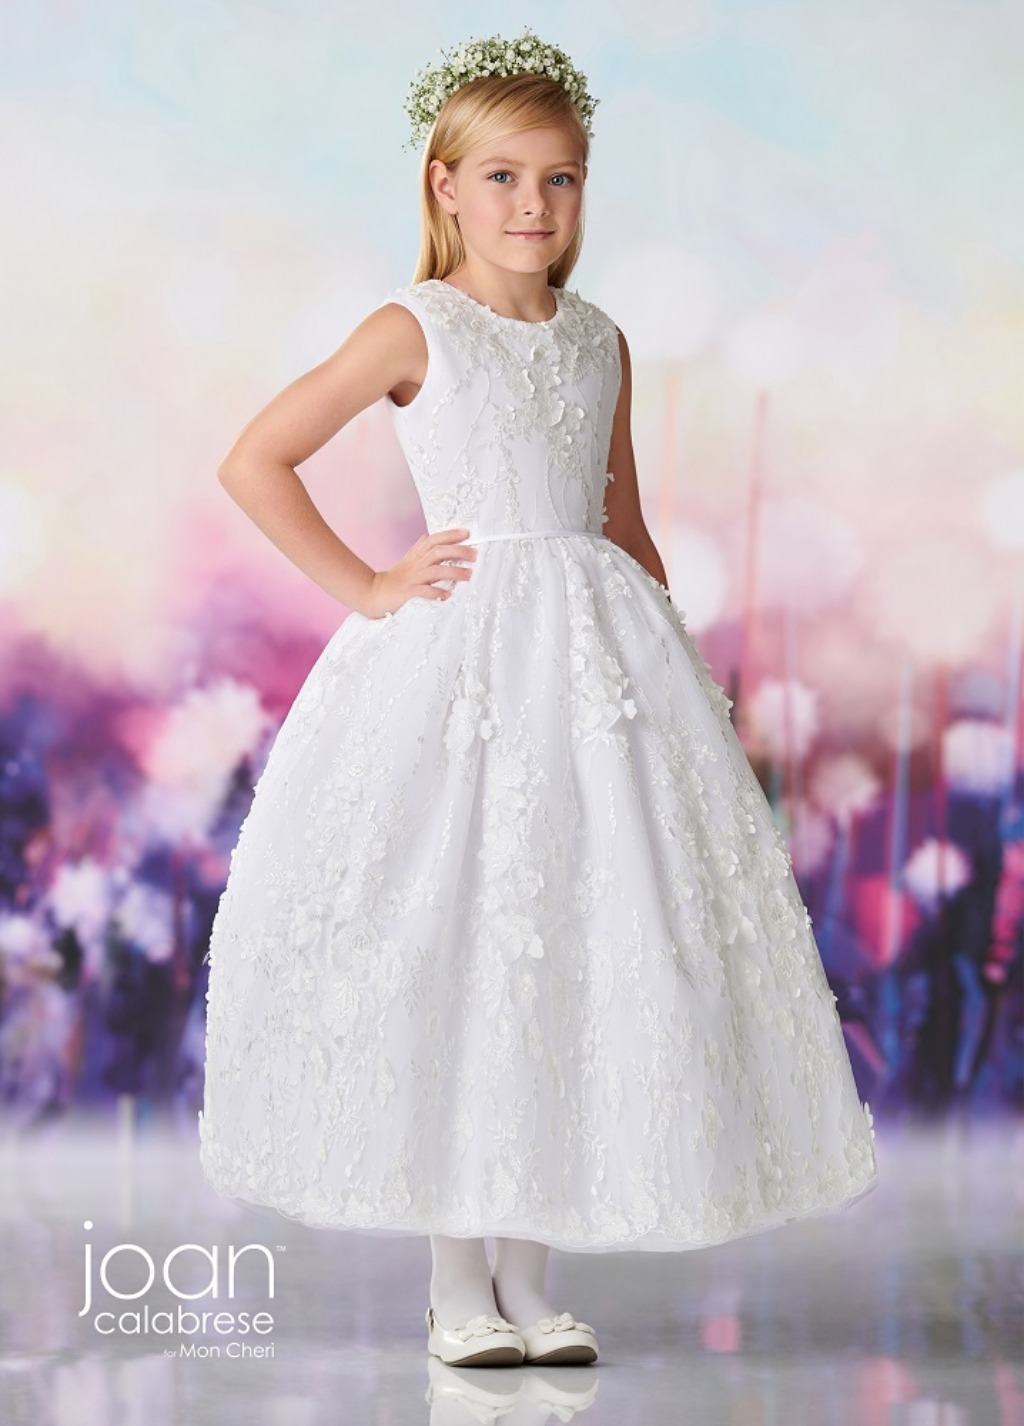 Joan Calabrese Flower Girl Trunk Show